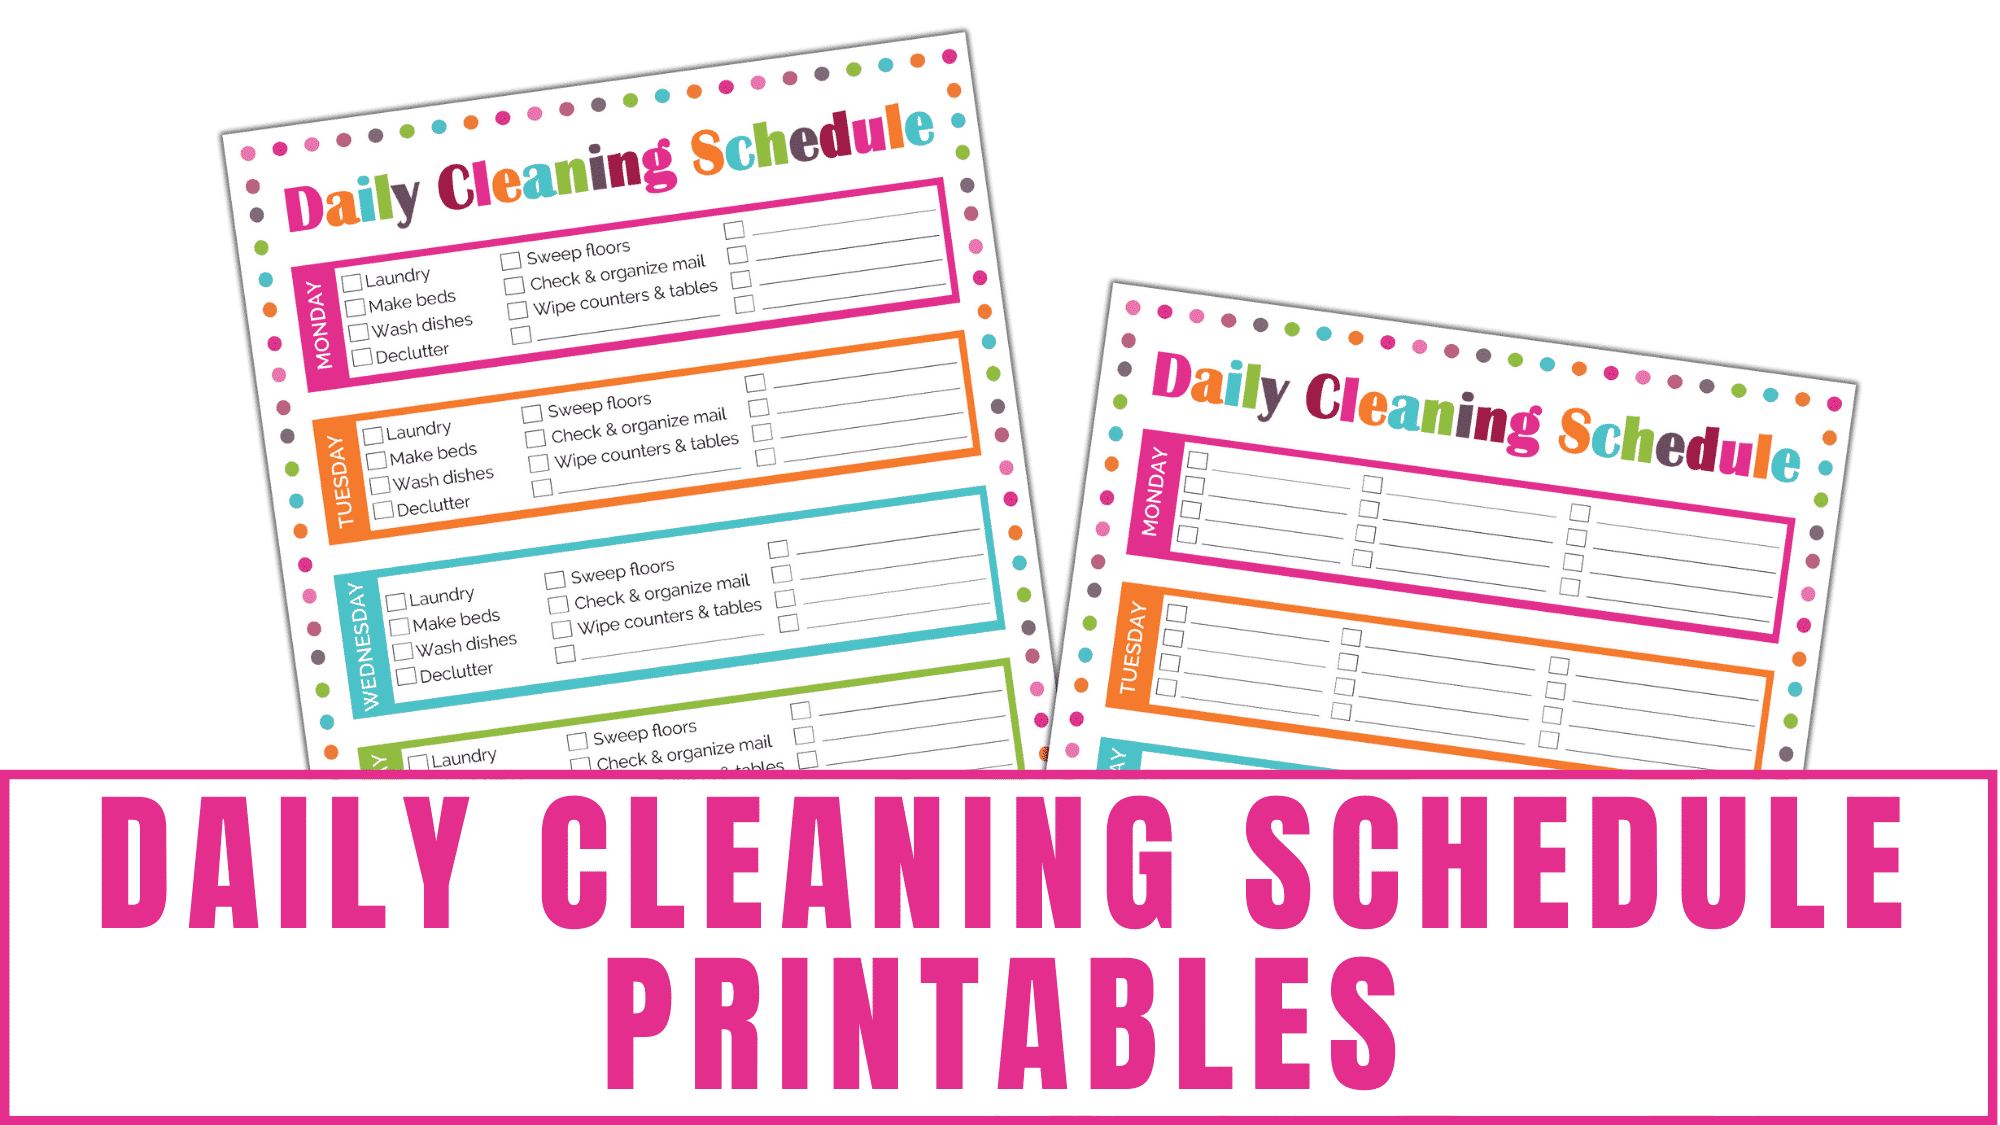 These daily cleaning schedule printables will help you track your daily household chores and better establish a schedule that works for you. Choose from a daily cleaning chart that's filled in or the blank daily cleaning schedule.